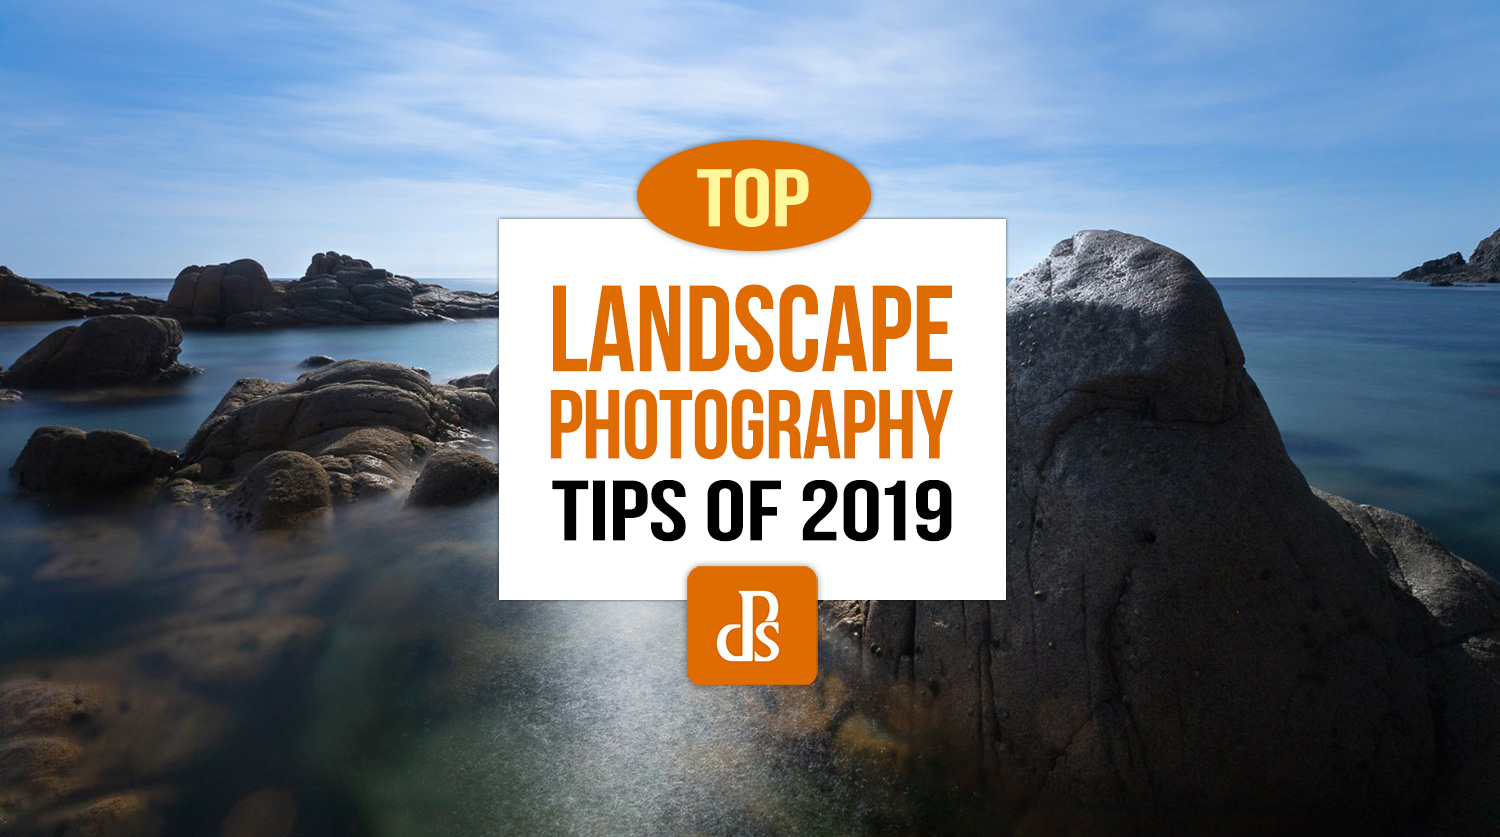 https://i0.wp.com/digital-photography-school.com/wp-content/uploads/2019/12/dps-top-landscape-photography-tips-2019.jpg?resize=1500%2C837&ssl=1